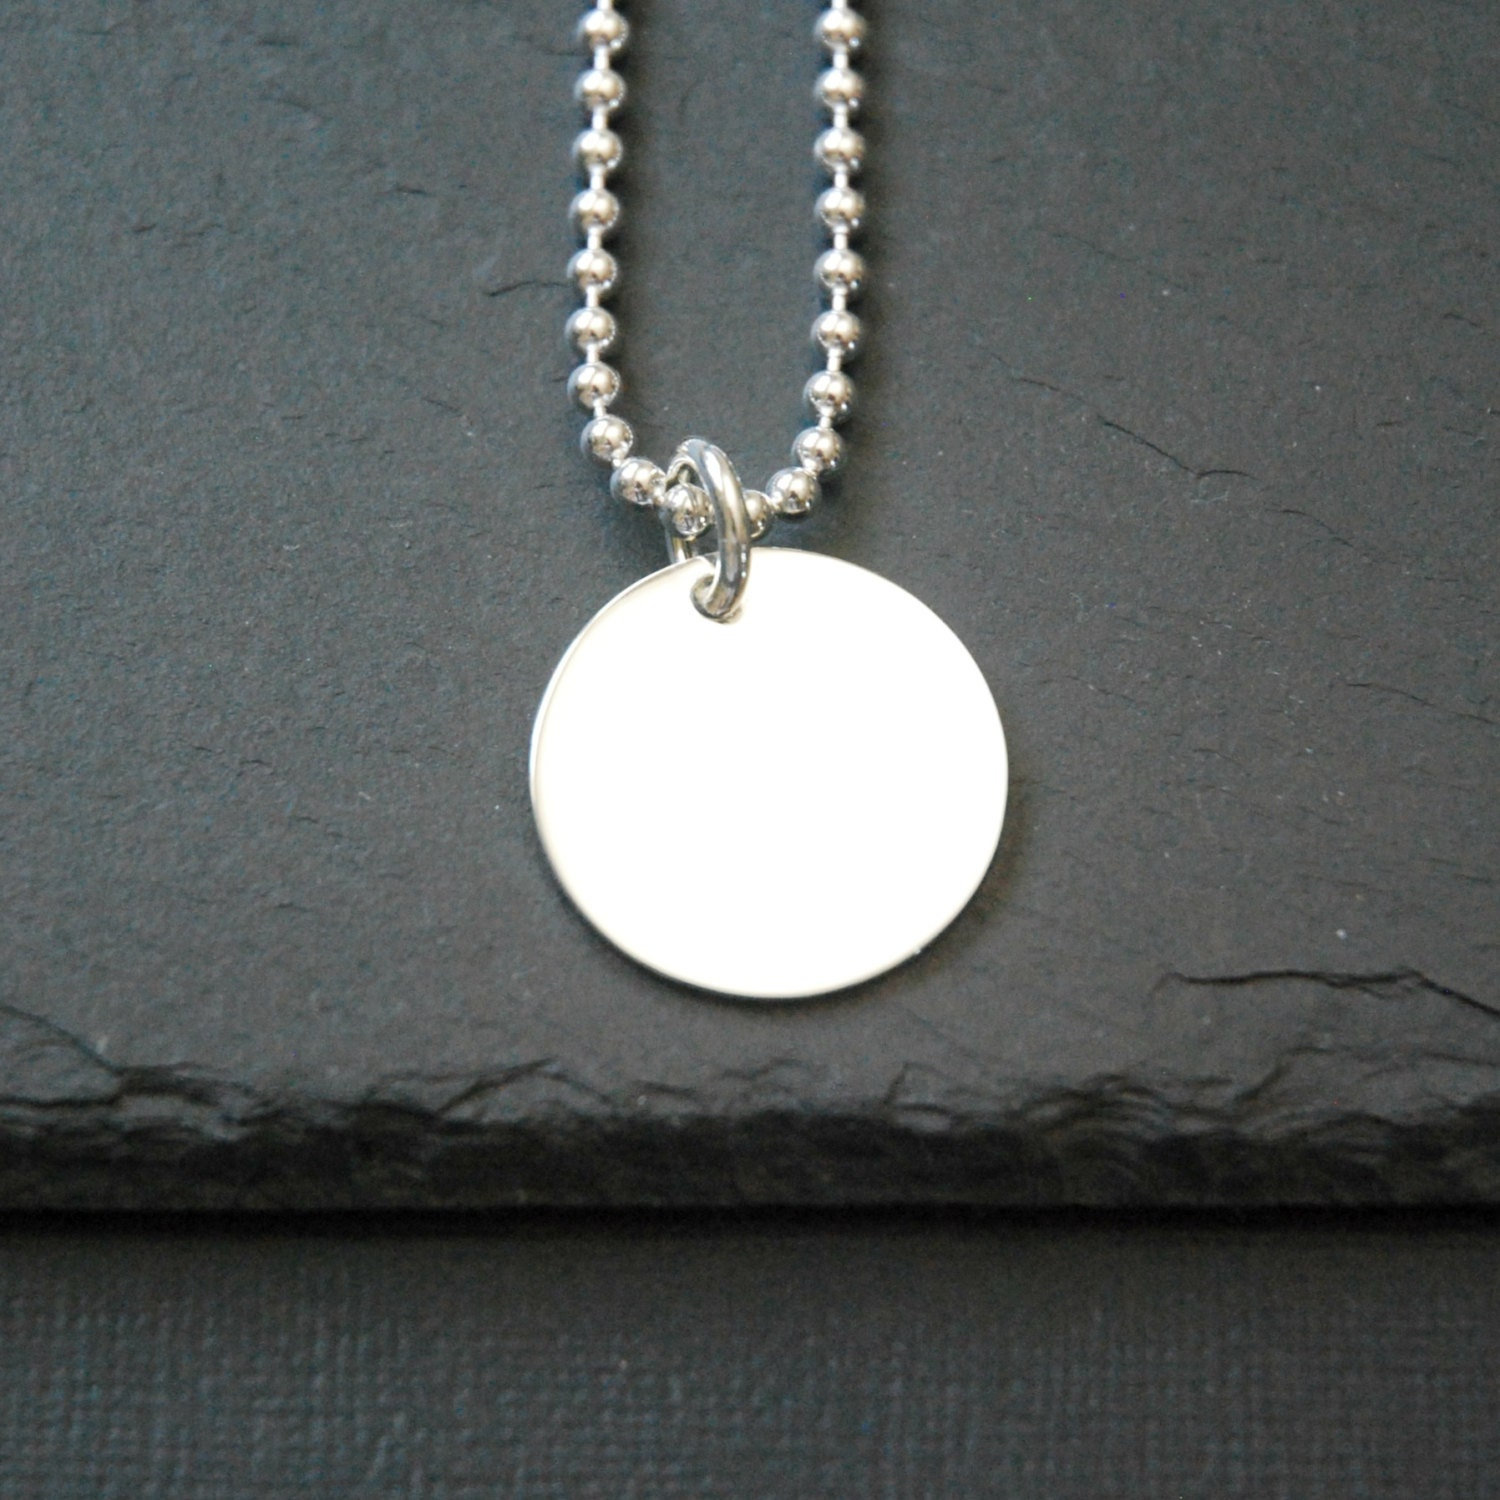 Disk Silvers: Engraved Disk Necklace Large Sterling Silver Tag